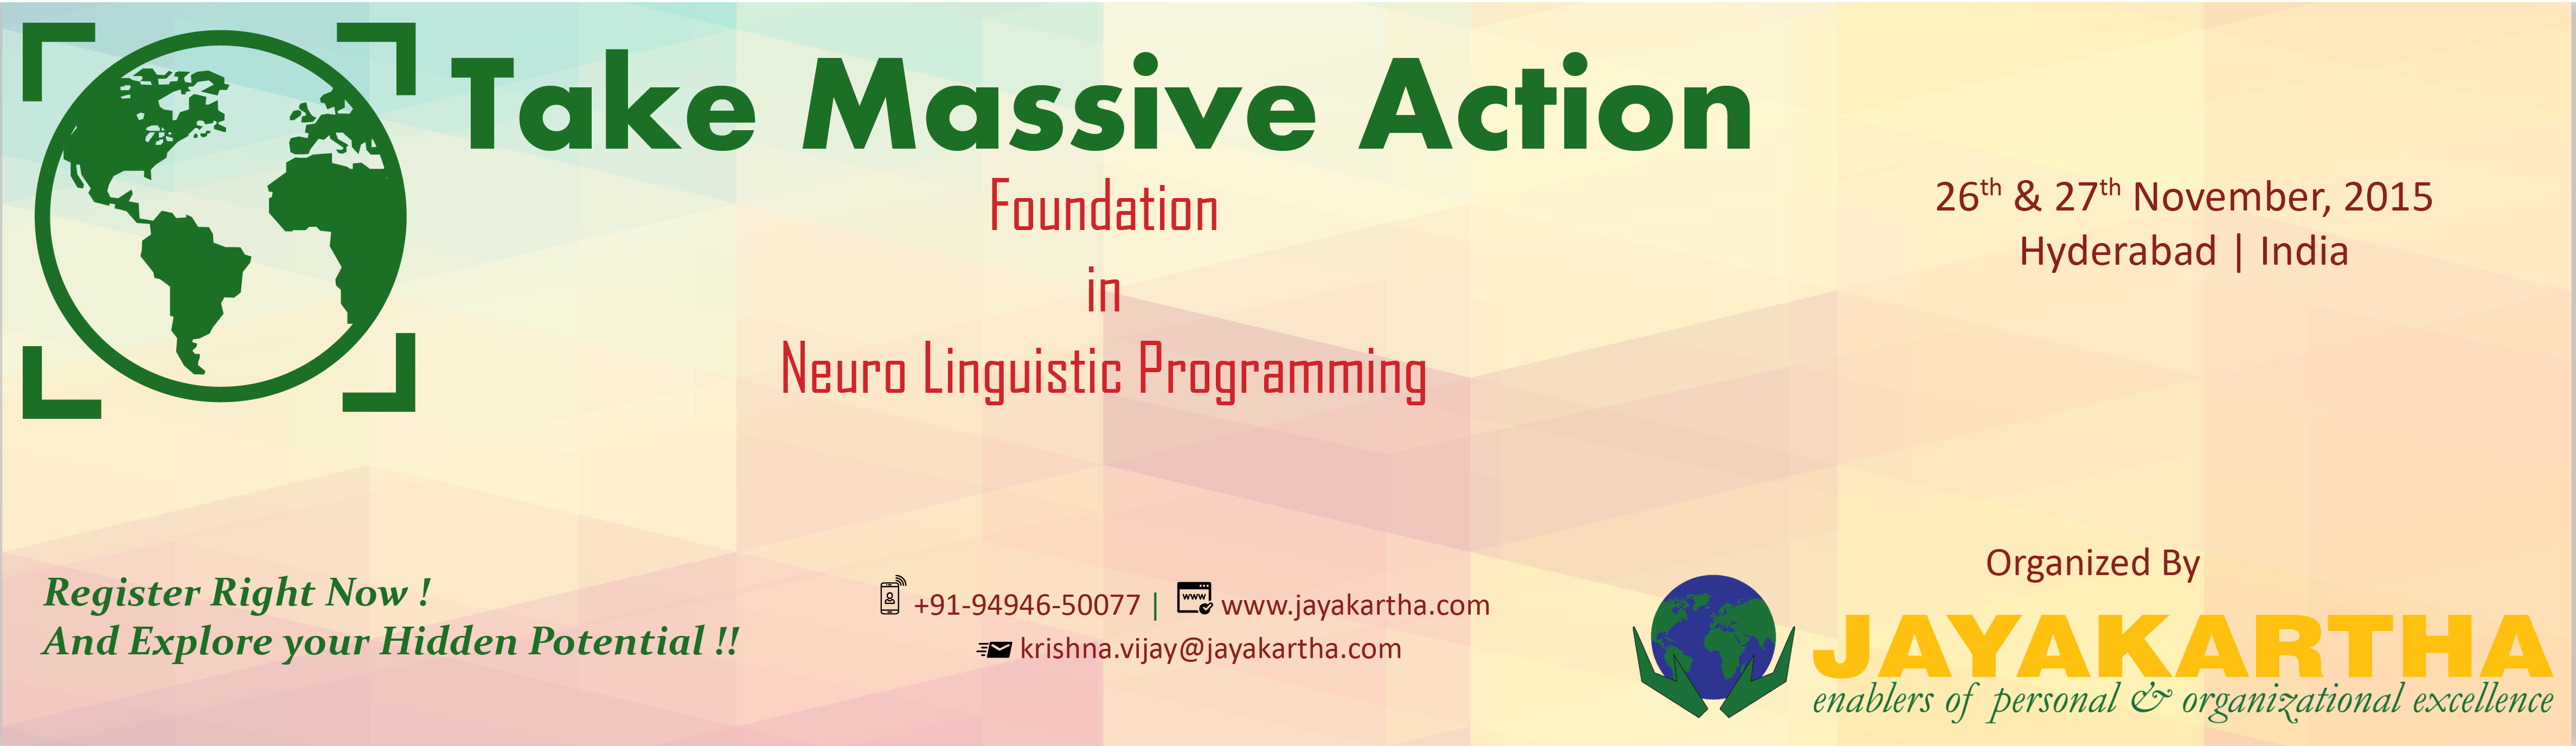 Book Online Tickets for Take Massive Action - Foundation in NLP, Hyderabad. Take Massive Action